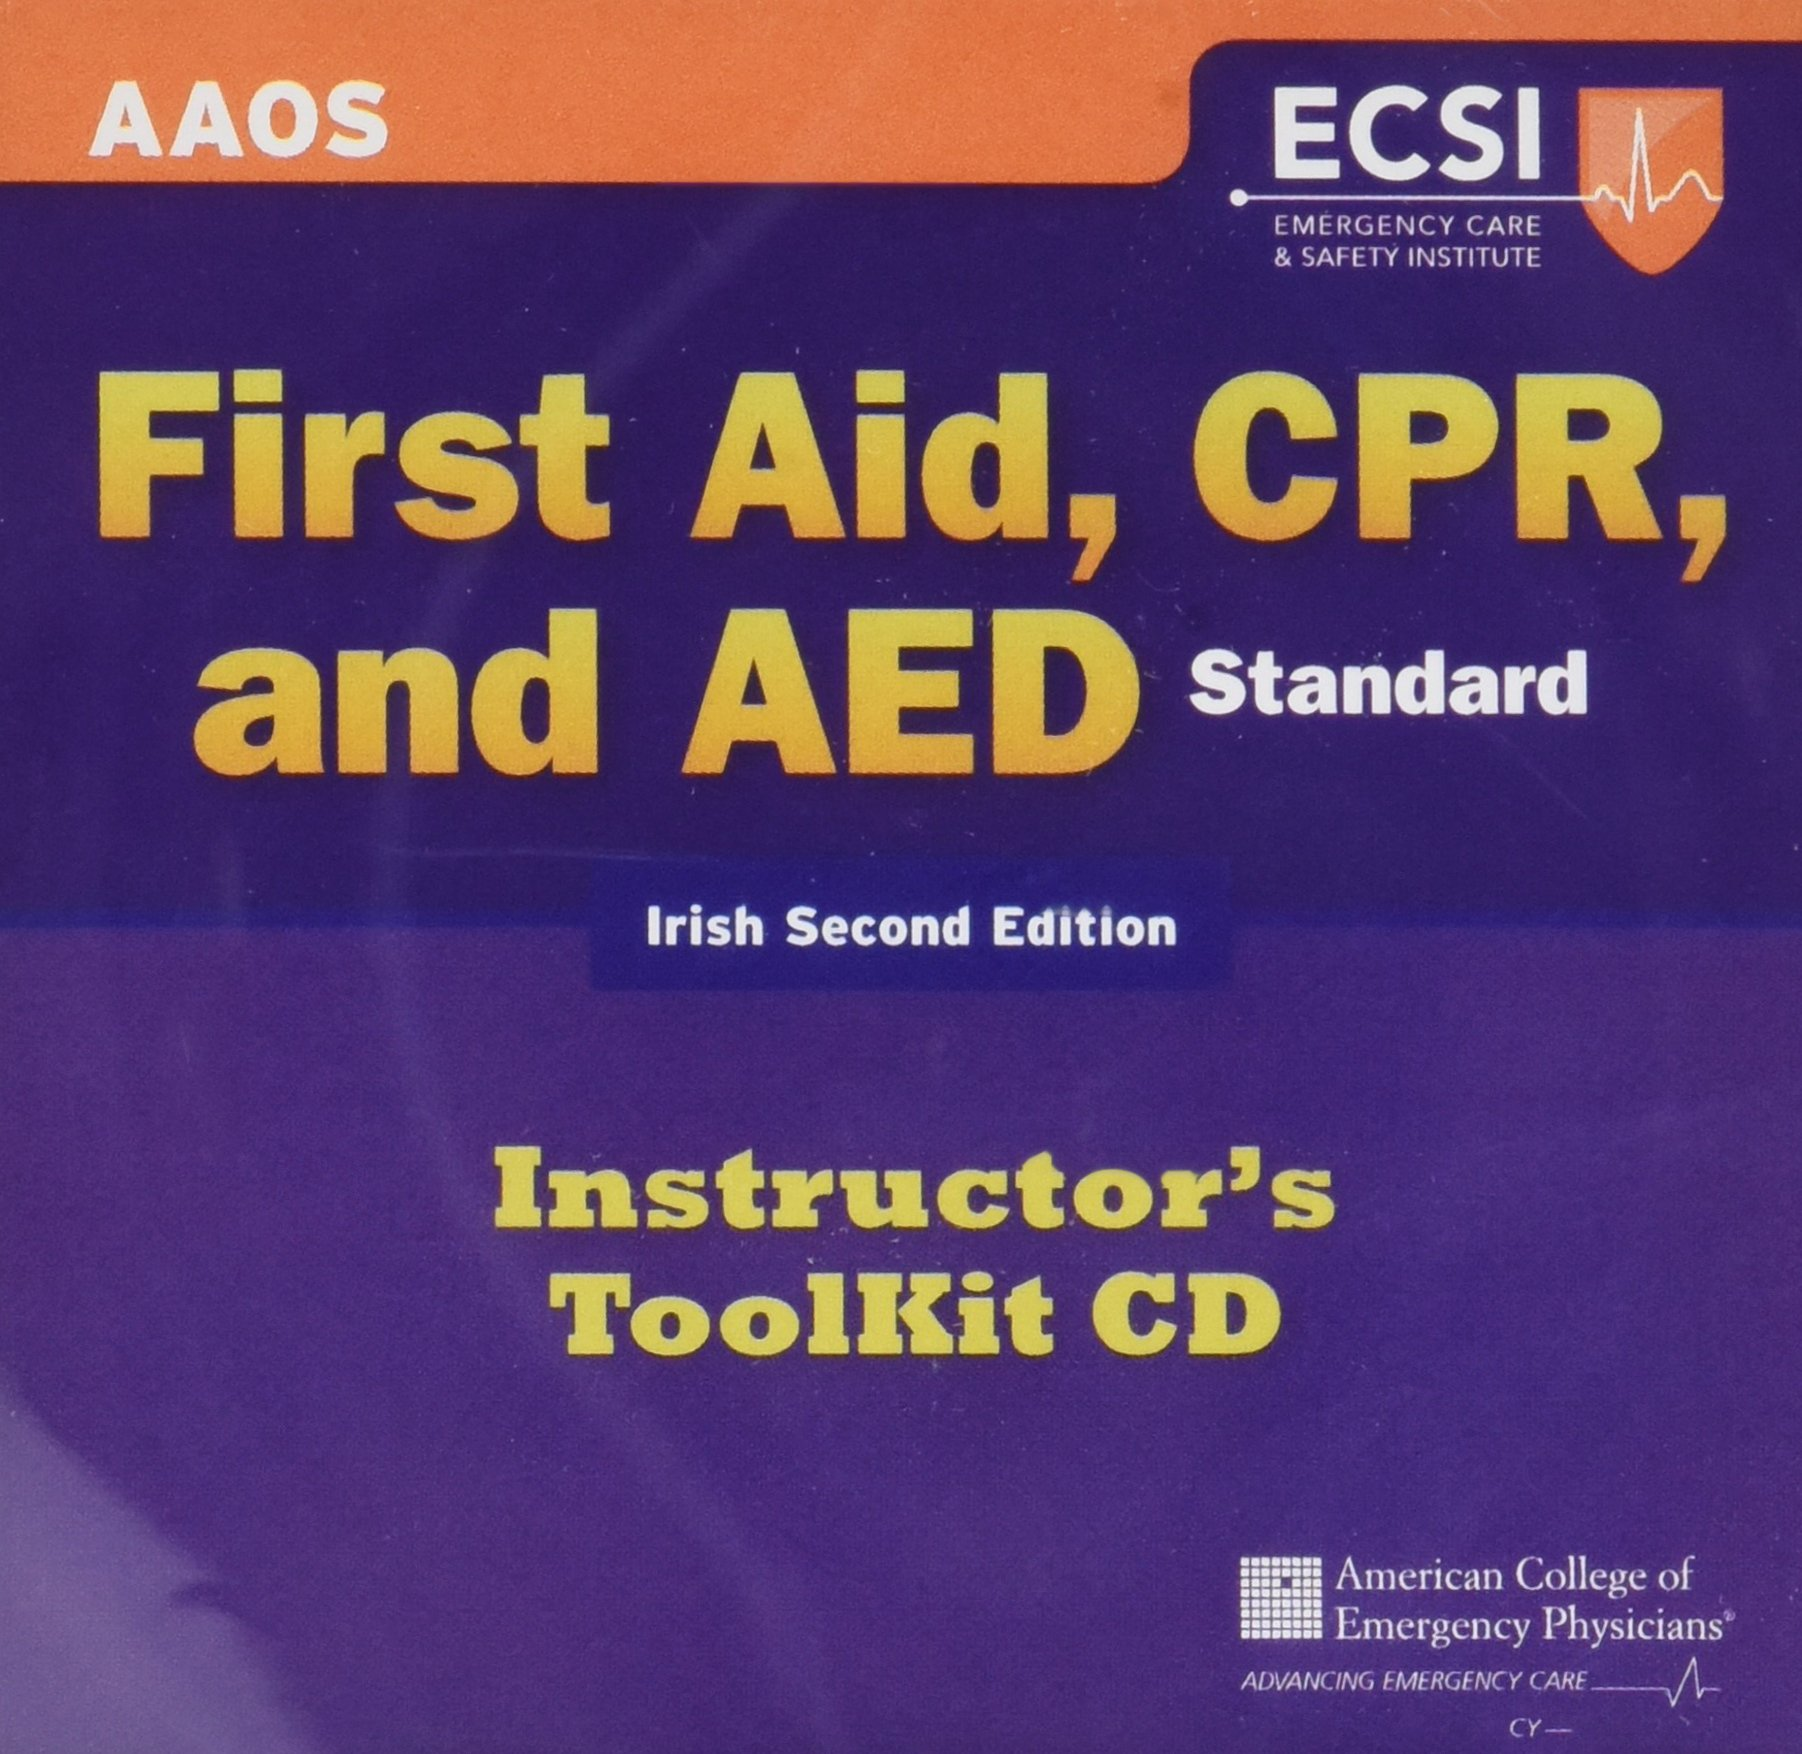 Irish Edition Standard First Aid, CPR, and AED, Instructor's Toolkit by Jones & Bartlett Learning